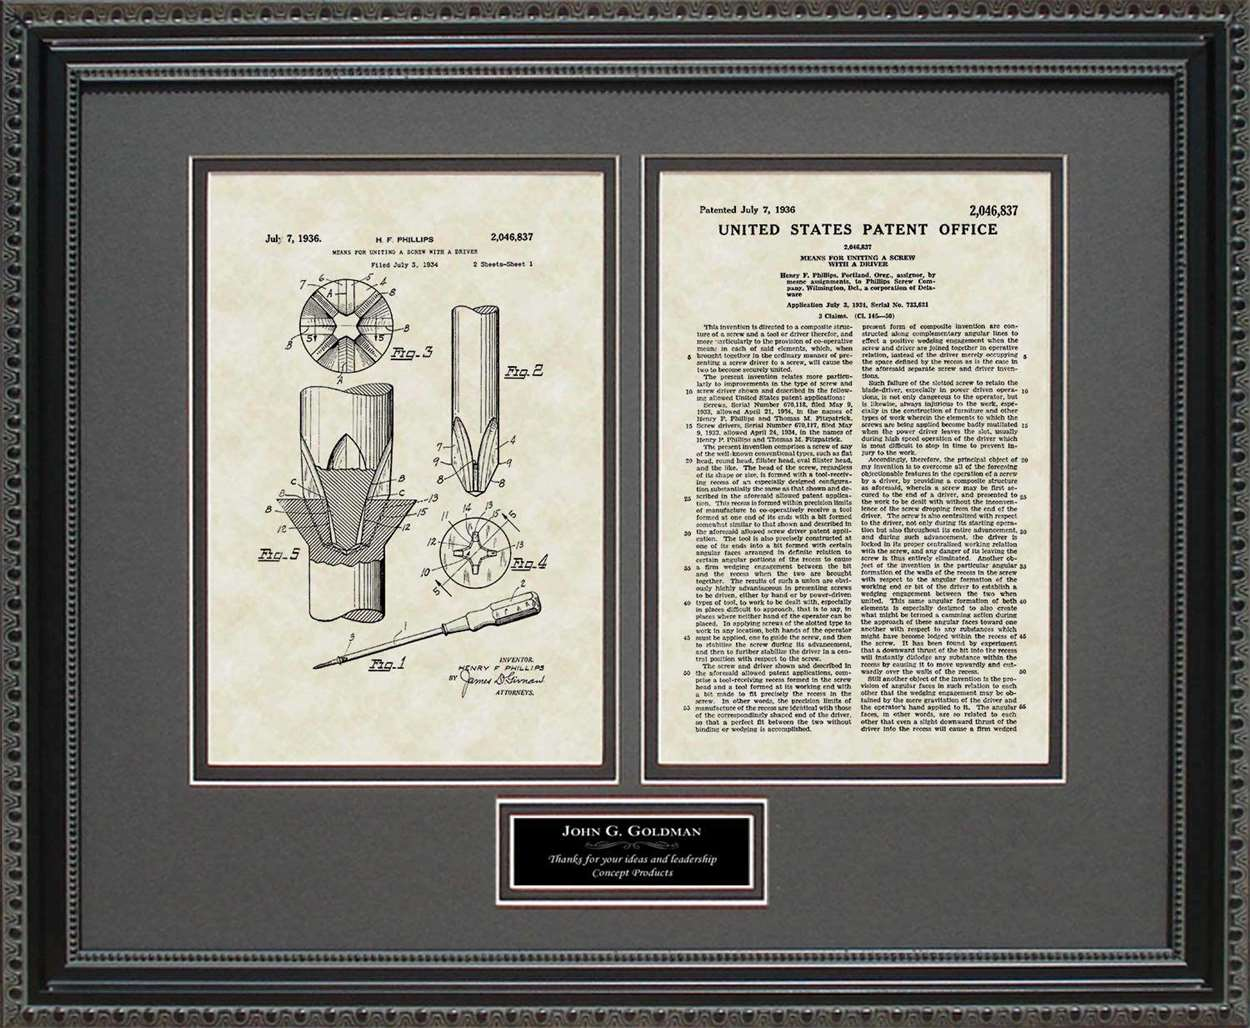 Personalized Phillips-Head Screwdriver Patent, Art & Copy, Phillips, 1936